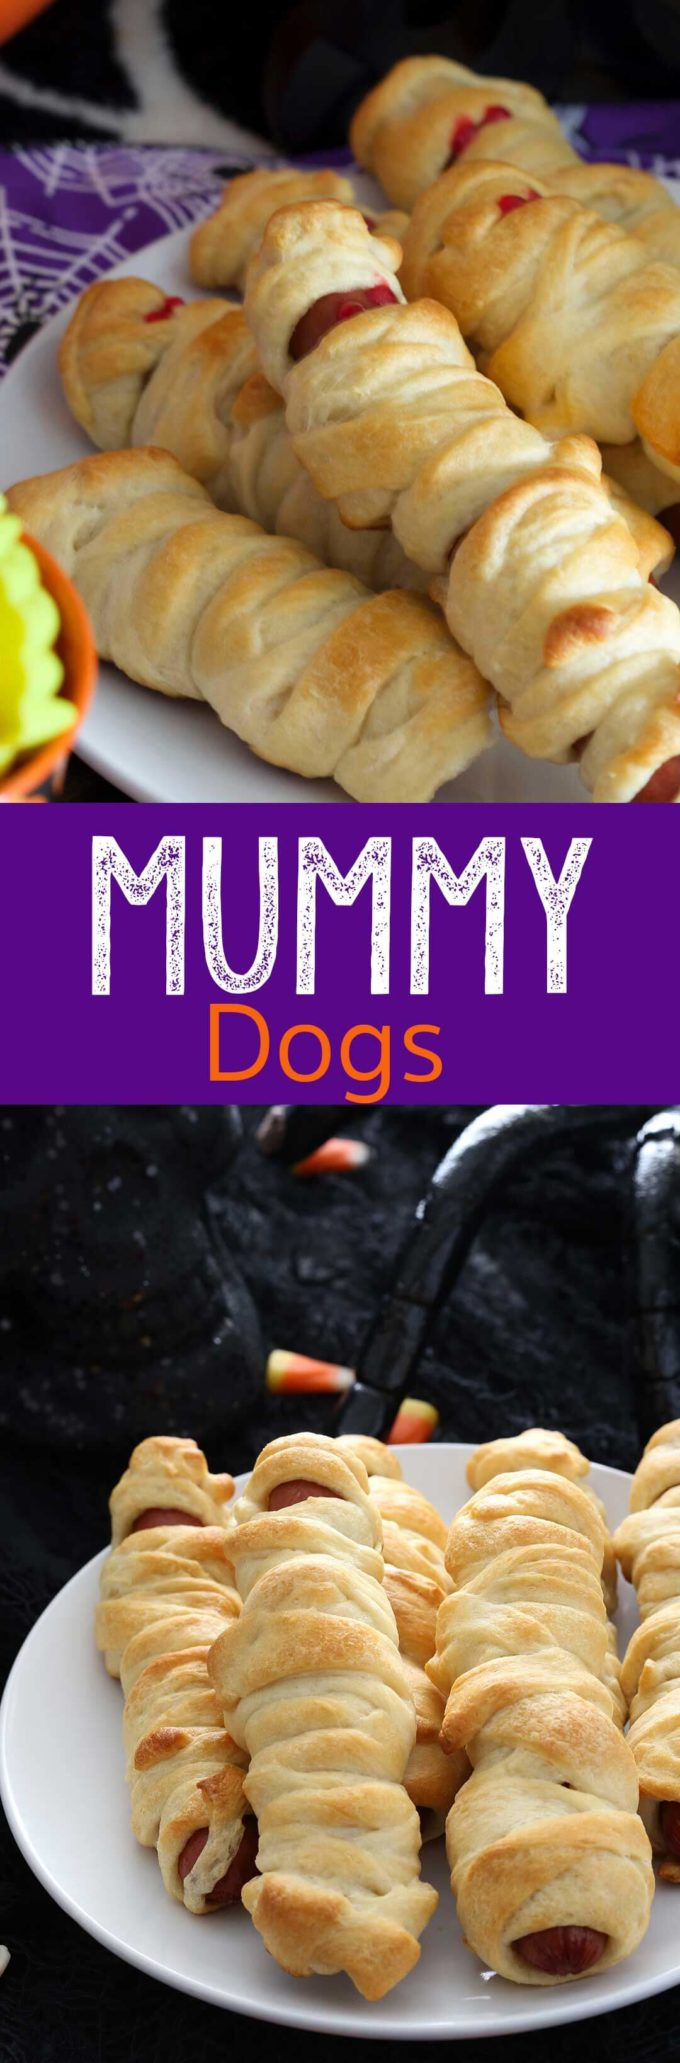 Mummy Dogs, are a perfect meal for Halloween night and lots of fun for the kids! Mummy Dogs are a fun, festive, and easy meal.